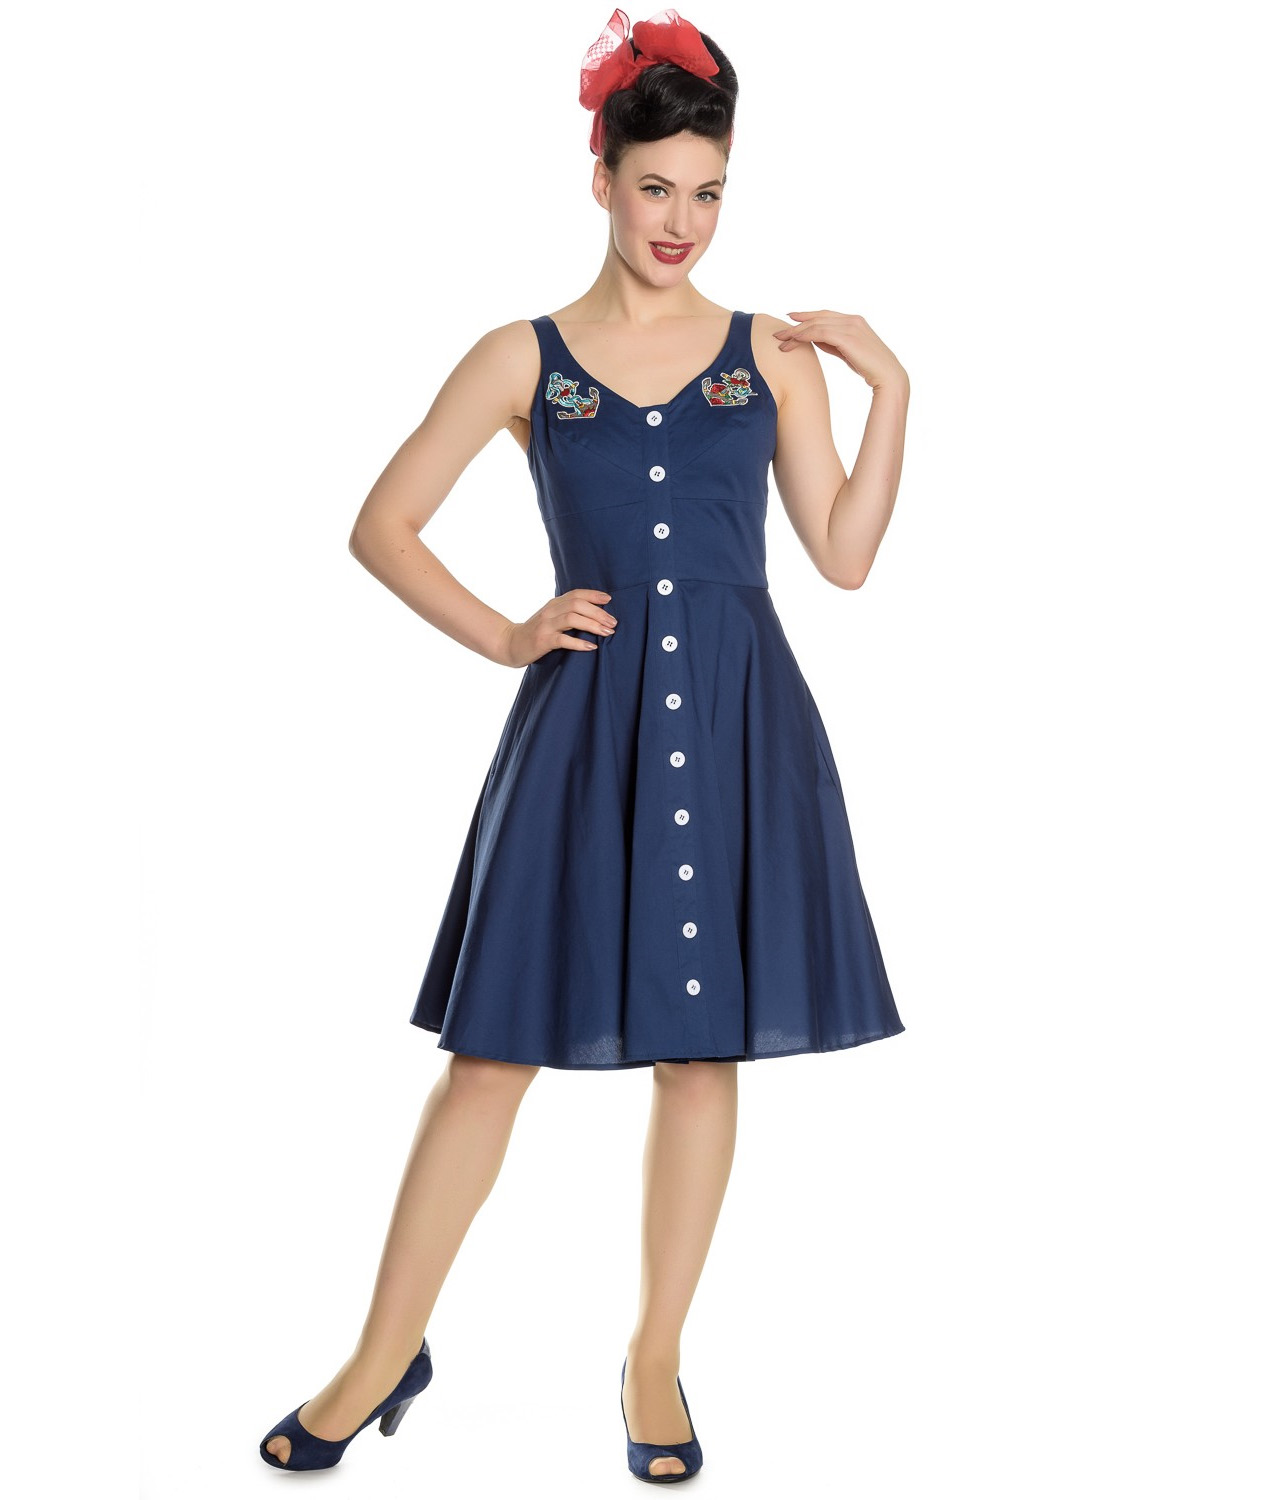 Hell-Bunny-Vintage-50s-Pin-Up-Dress-Navy-Blue-SELA-Nautical-Anchors-All-Sizes thumbnail 23